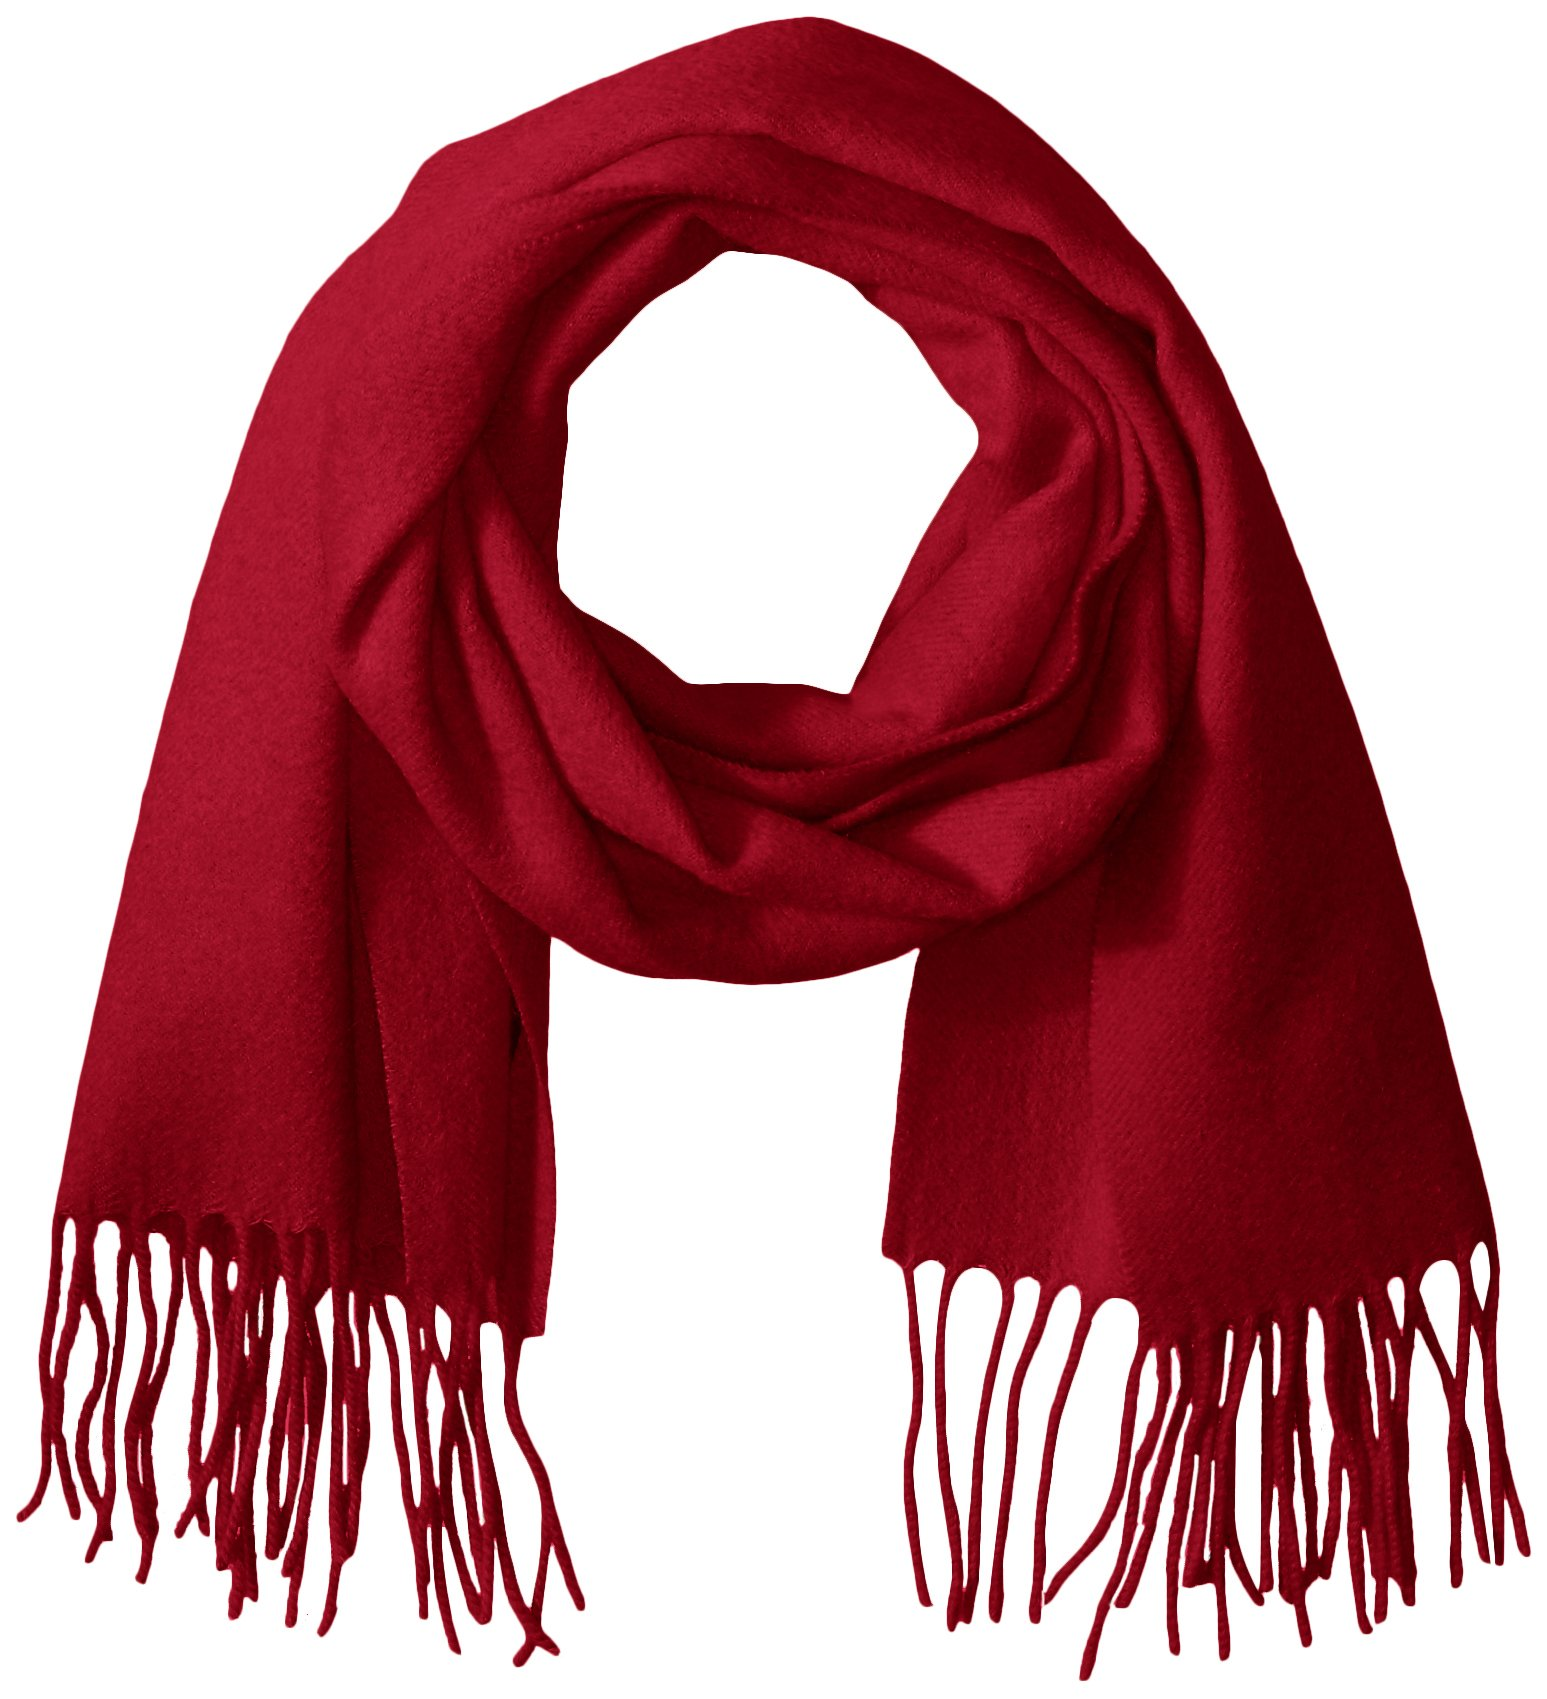 Phenix Cashmere Women's Solid 100 Percent Cashmere Scarf, Red, One Size